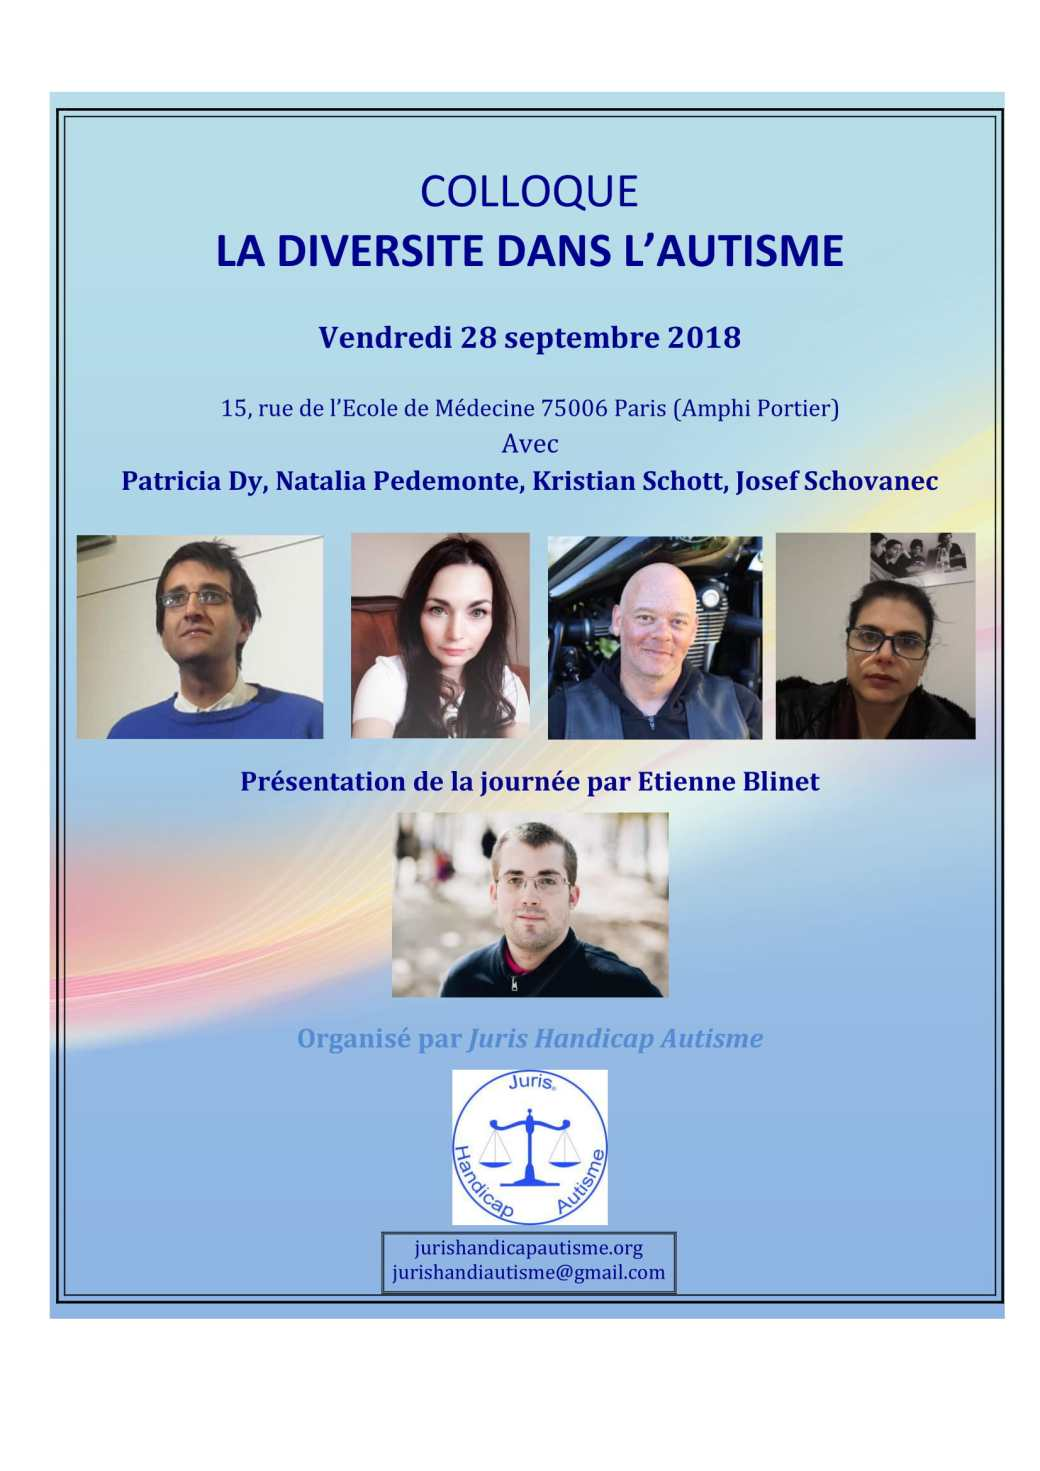 AFFICHE COLLOQUE JHA 28-09-2018 -Version 3-1.jpg